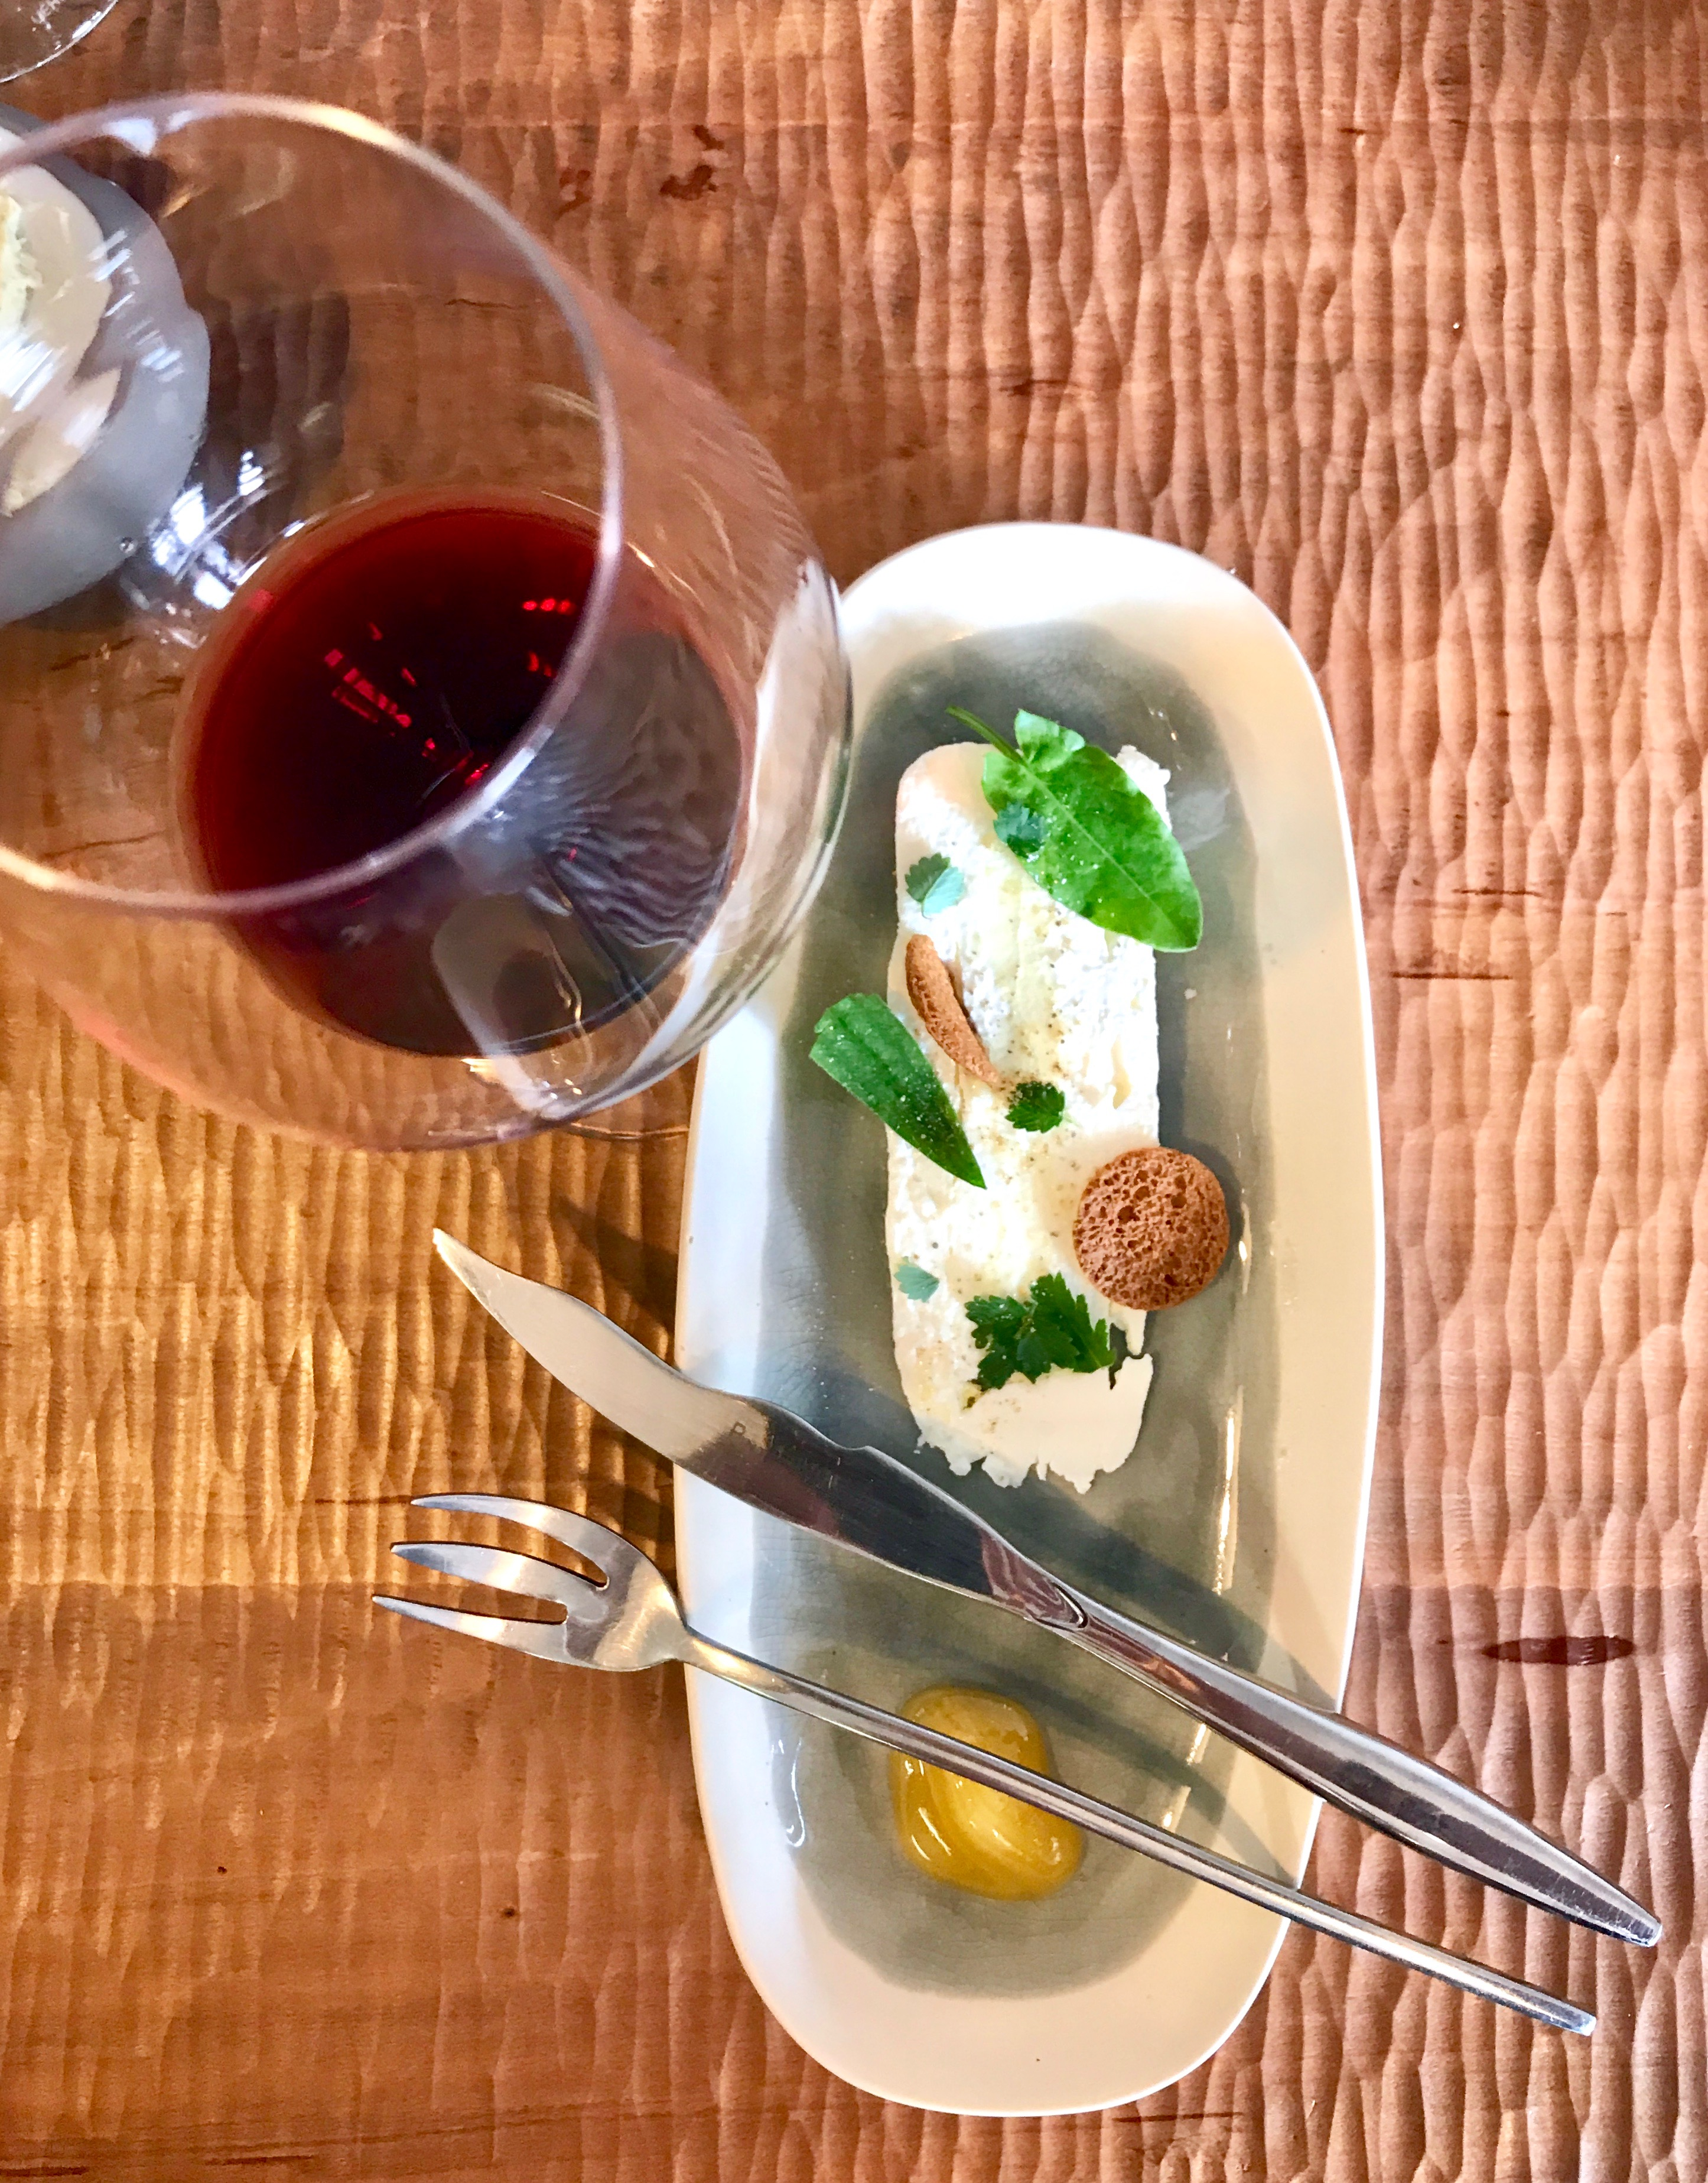 Fromage Cuisine with a glass of AOC Maranges